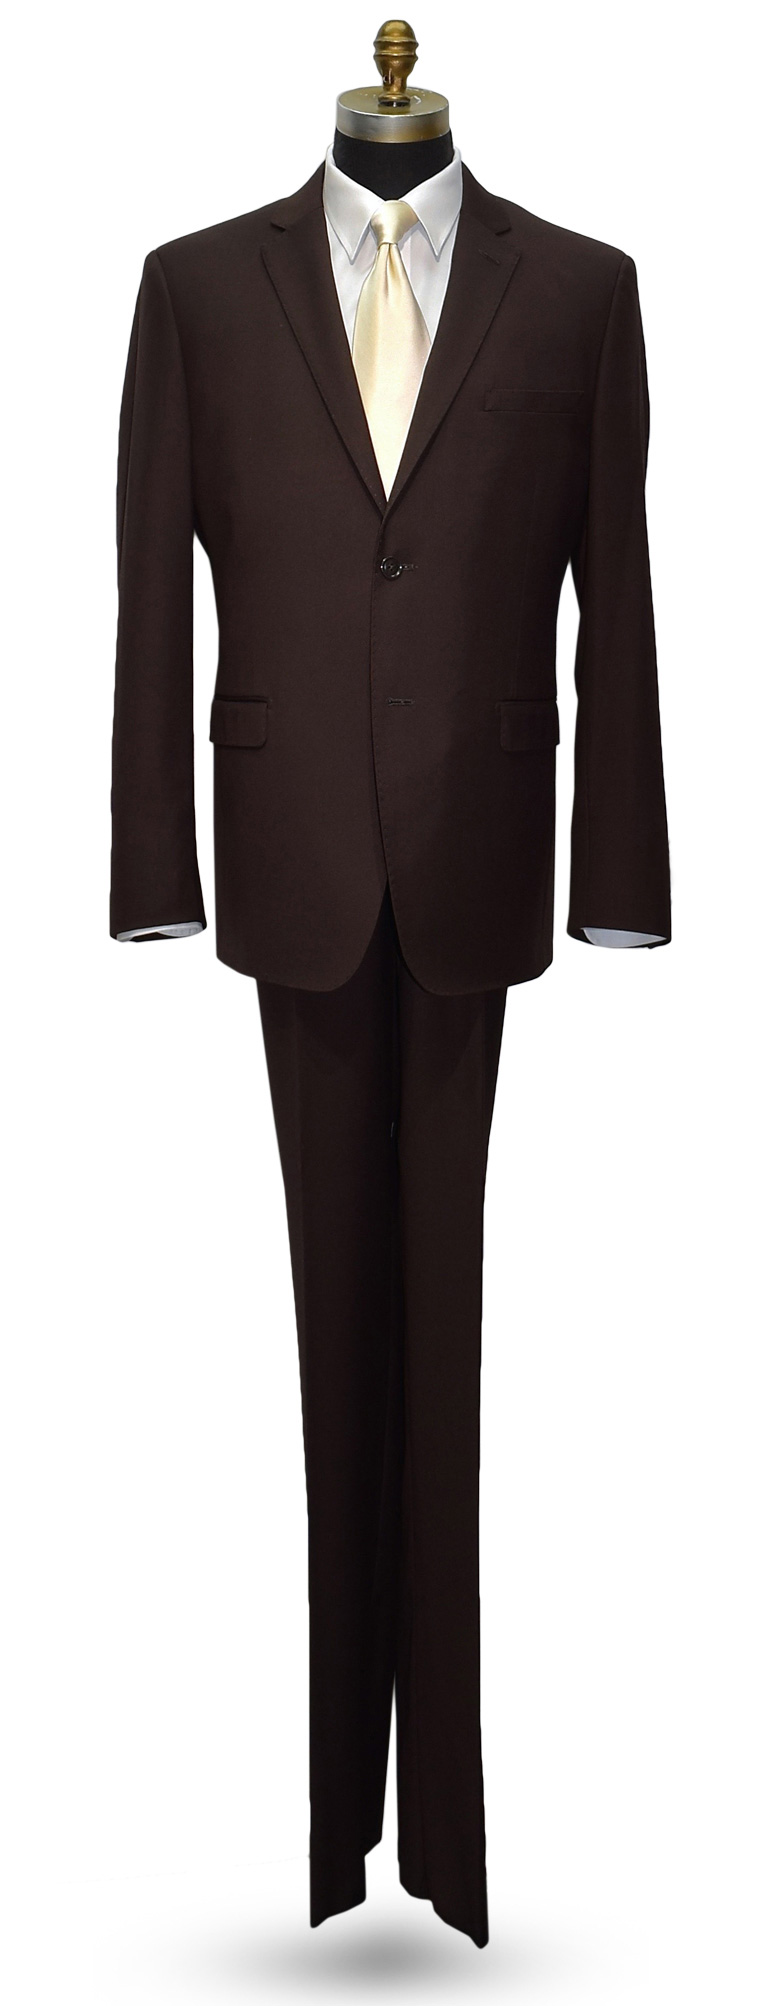 CHOCOLATE BROWN MENS SUIT - COAT AND PANTS SET